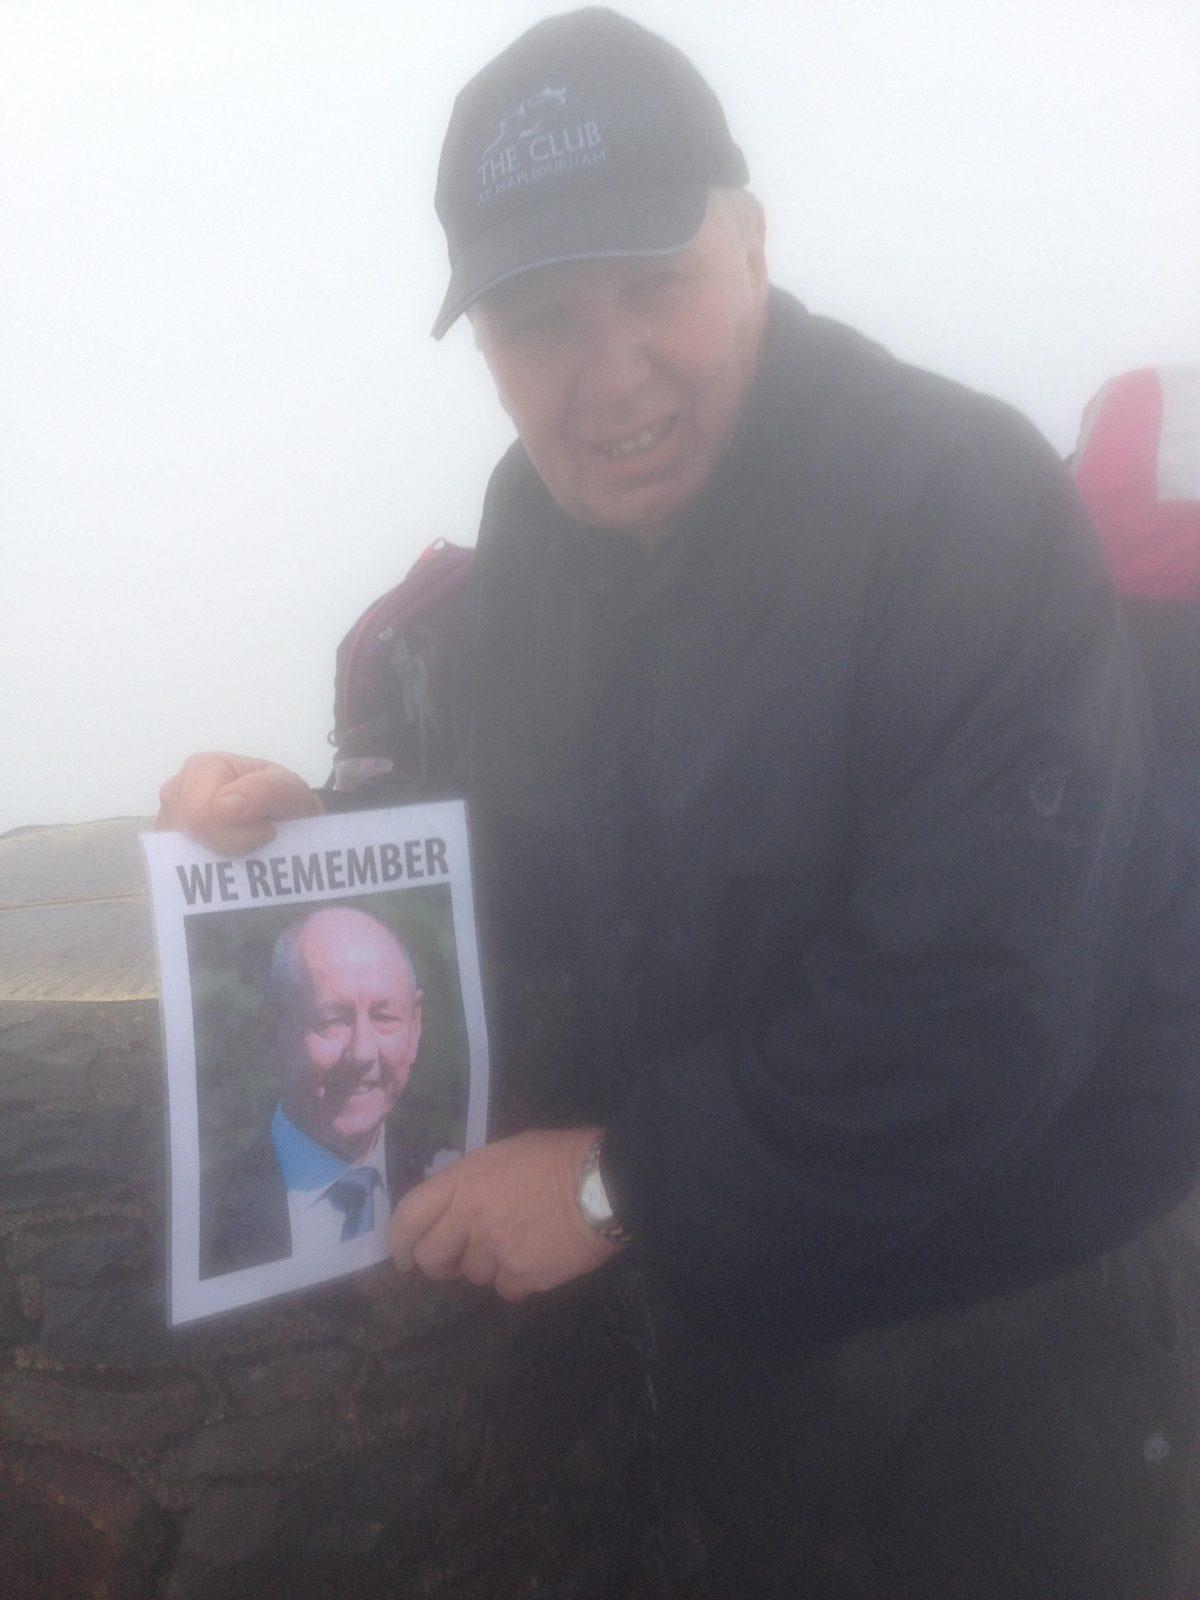 On the 7th June 2014, 21 members of the company made it to the summit of Mount Snowdon and down again. The walk was in memory of Colin Earl who had worked with MF Hydraulics for 30 years and sadly died of cancer last year. The morning of the 7th, the team awoke to a … Continue reading